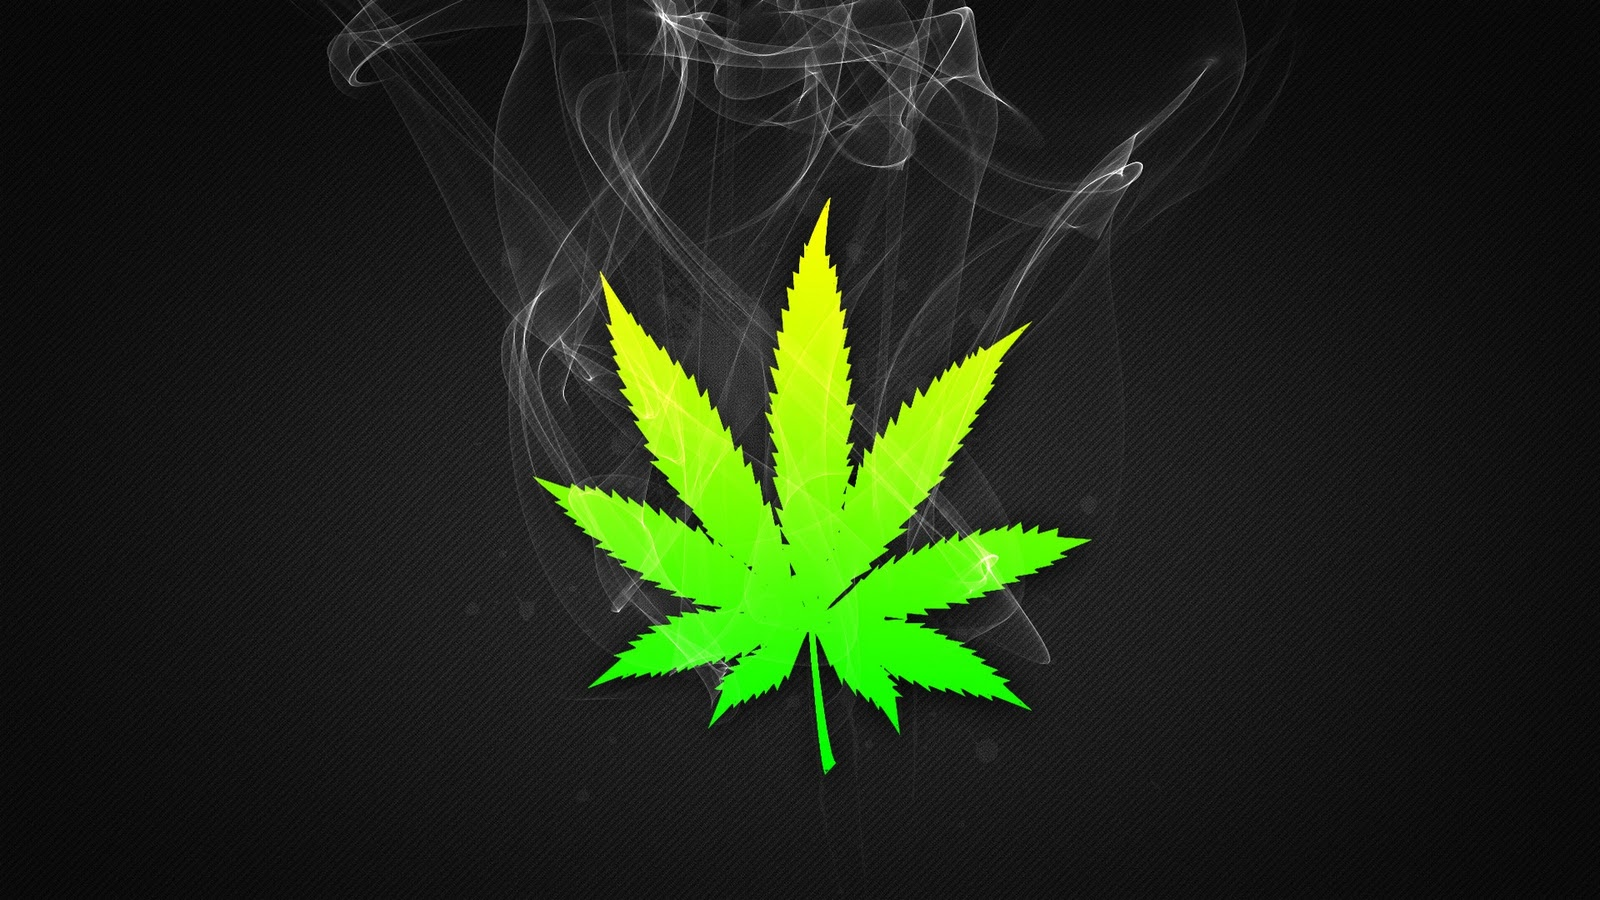 Weed Smoke Wallpaper Hd Smoke 'n' weed wallpaper